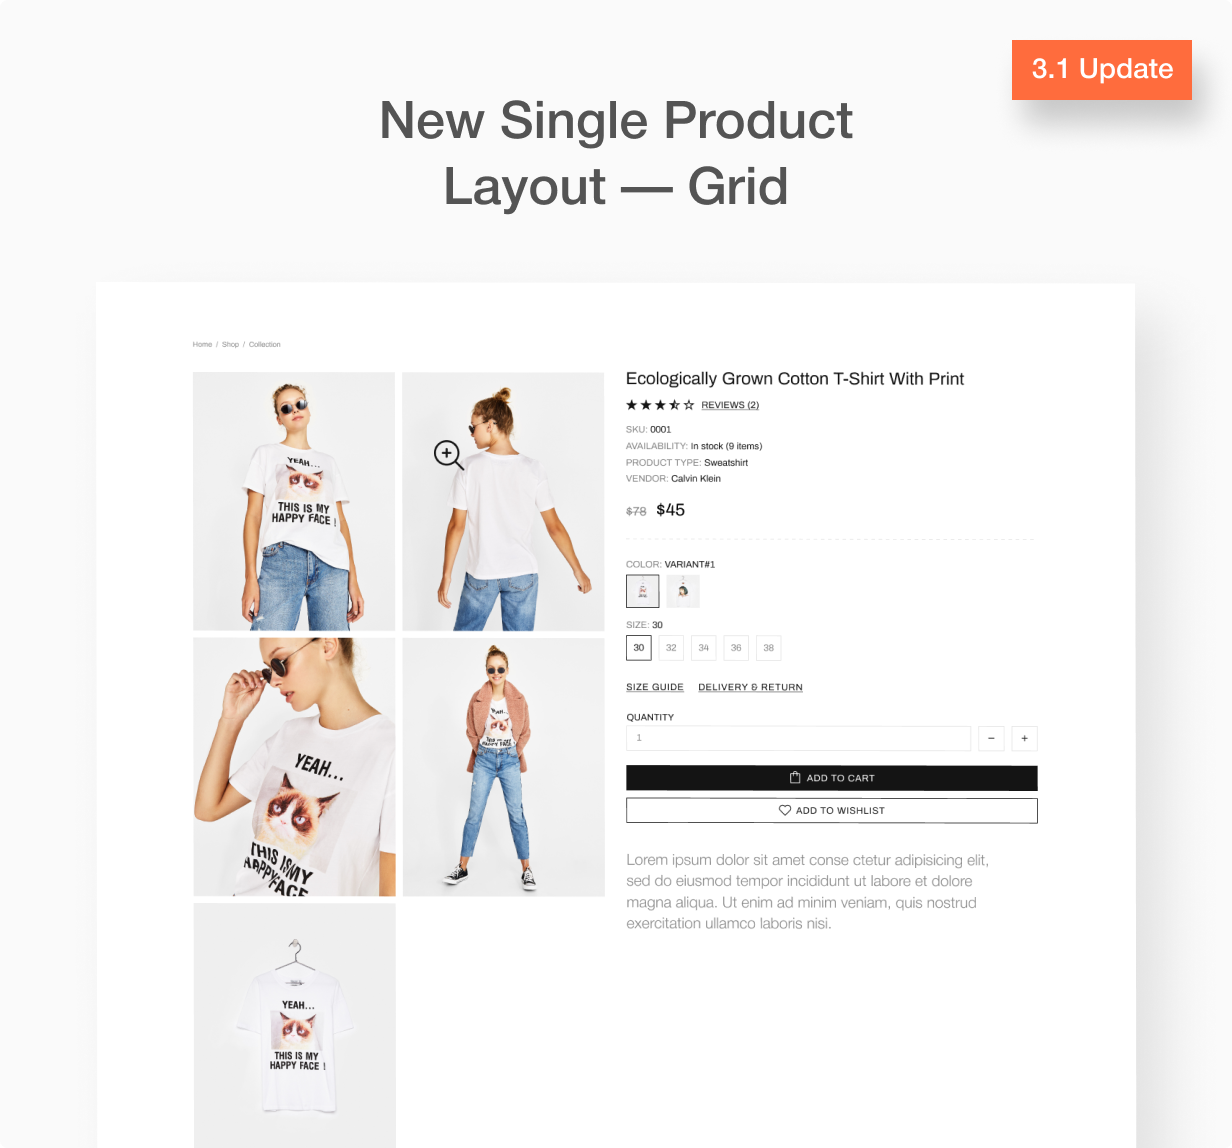 Update 3.1 Product image gallery as a grid